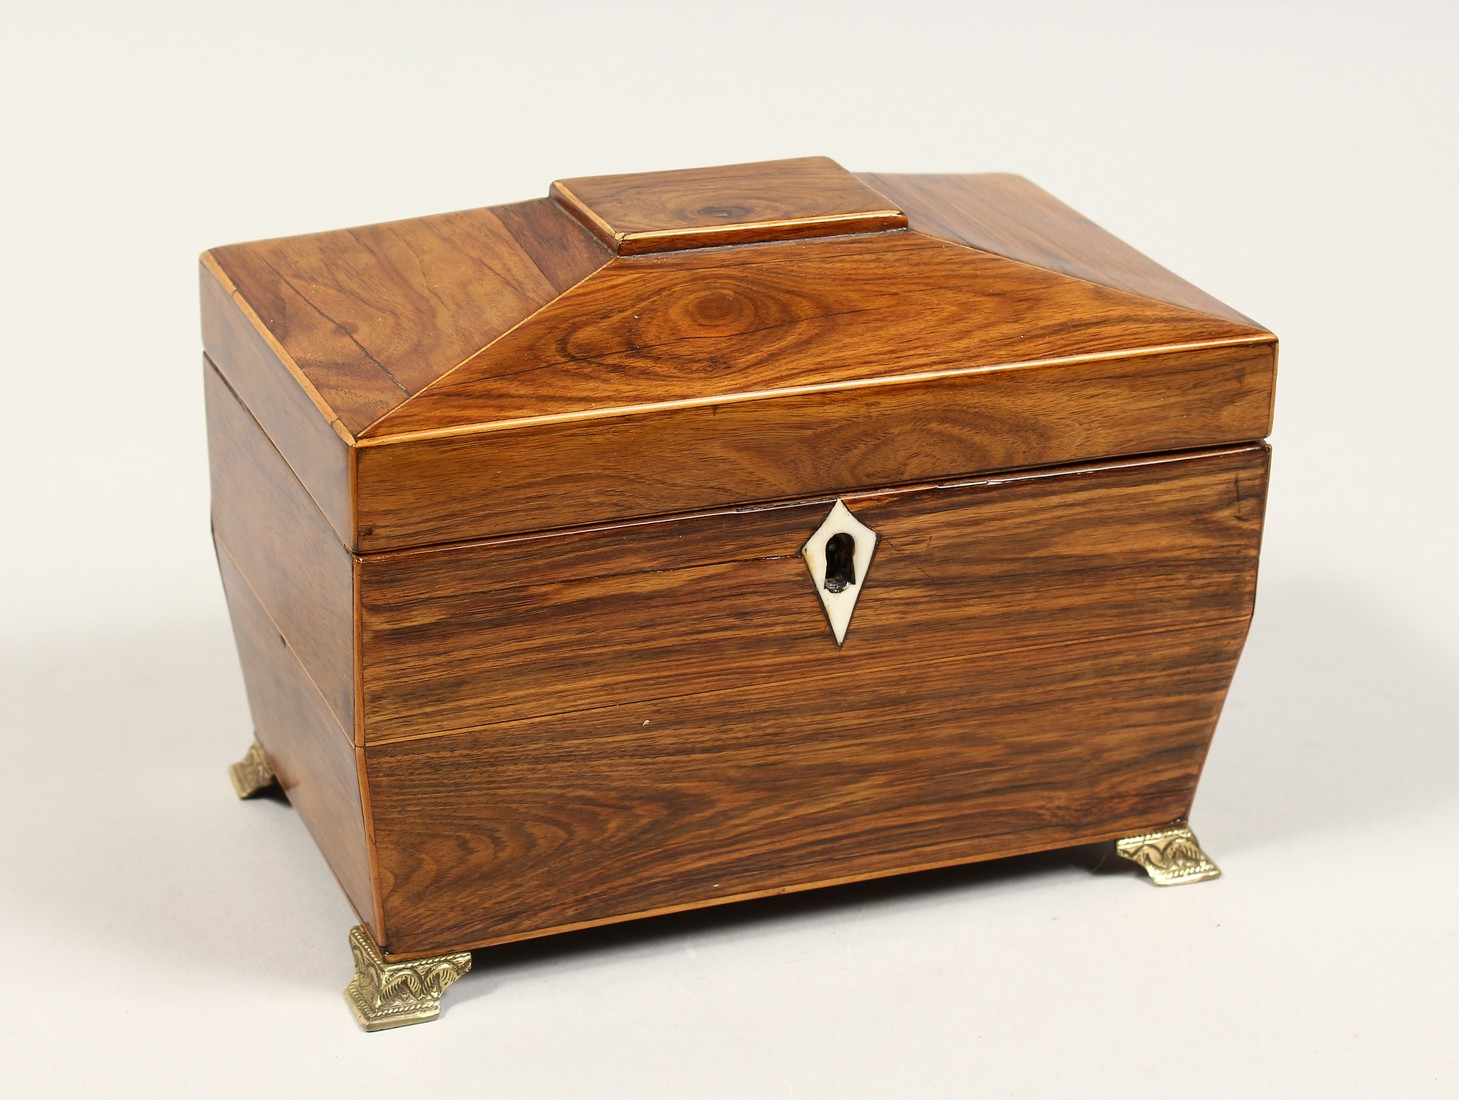 A REGENCY ROSEWOOD DOMED TOP TWO DIVISION TEA CADDY with iron escutcheon on brass bracket feet. 7.